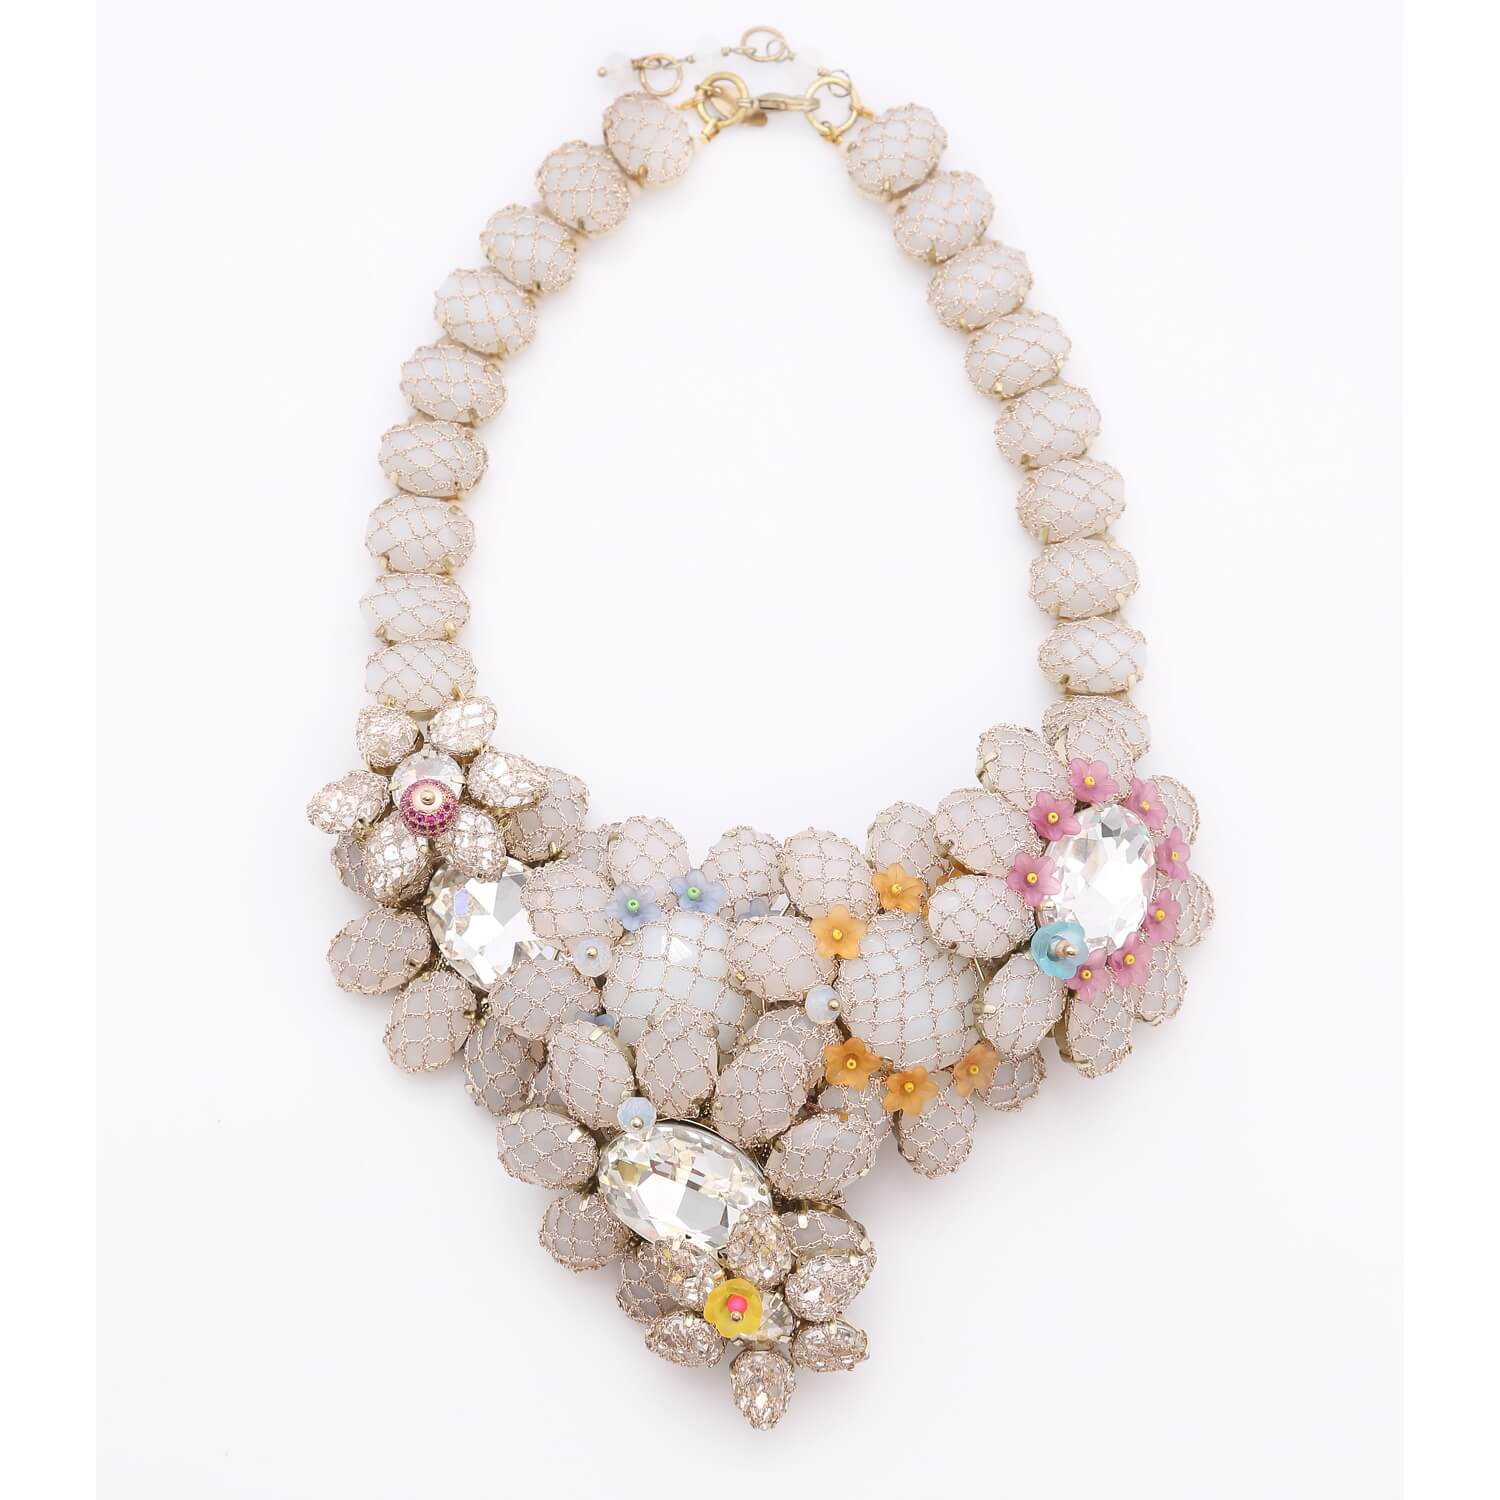 Venus Sun Flower Large Crystal Necklace - Opal White Coral